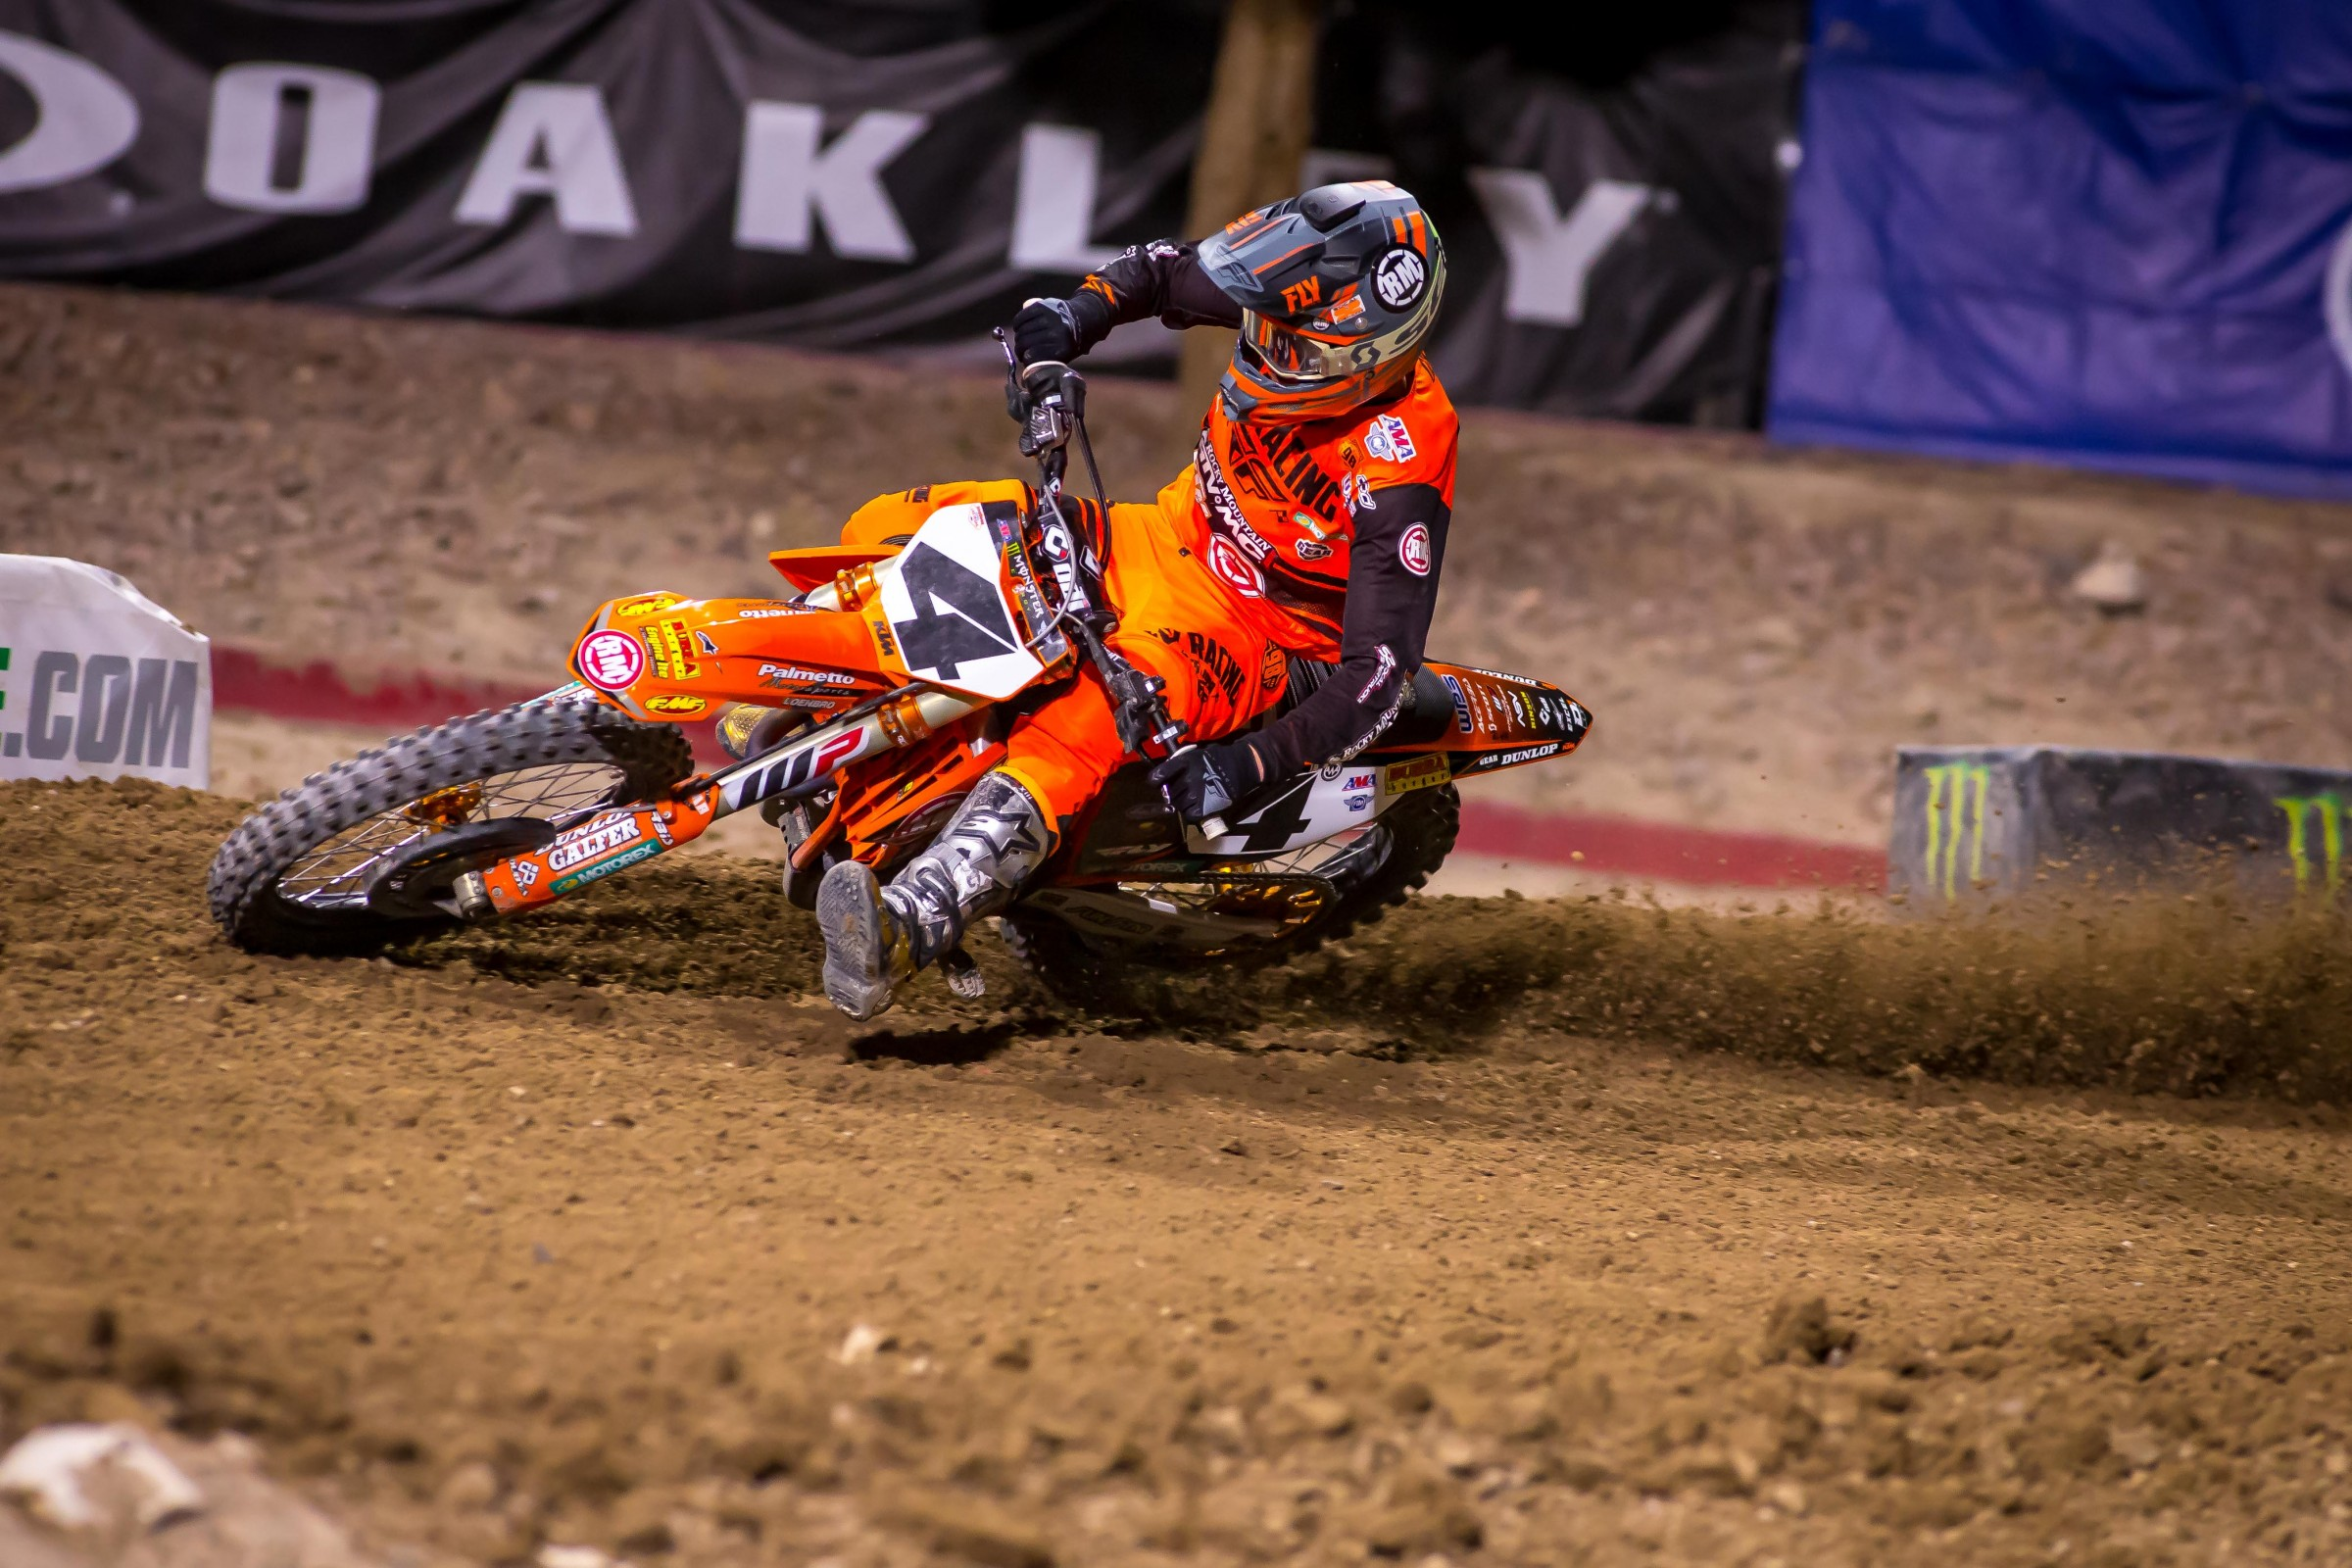 Baggett is coming off another thumb injury sustained at the Atlanta Supercross, but returned to form at the end of the season, making the podium twice in the final two rounds.